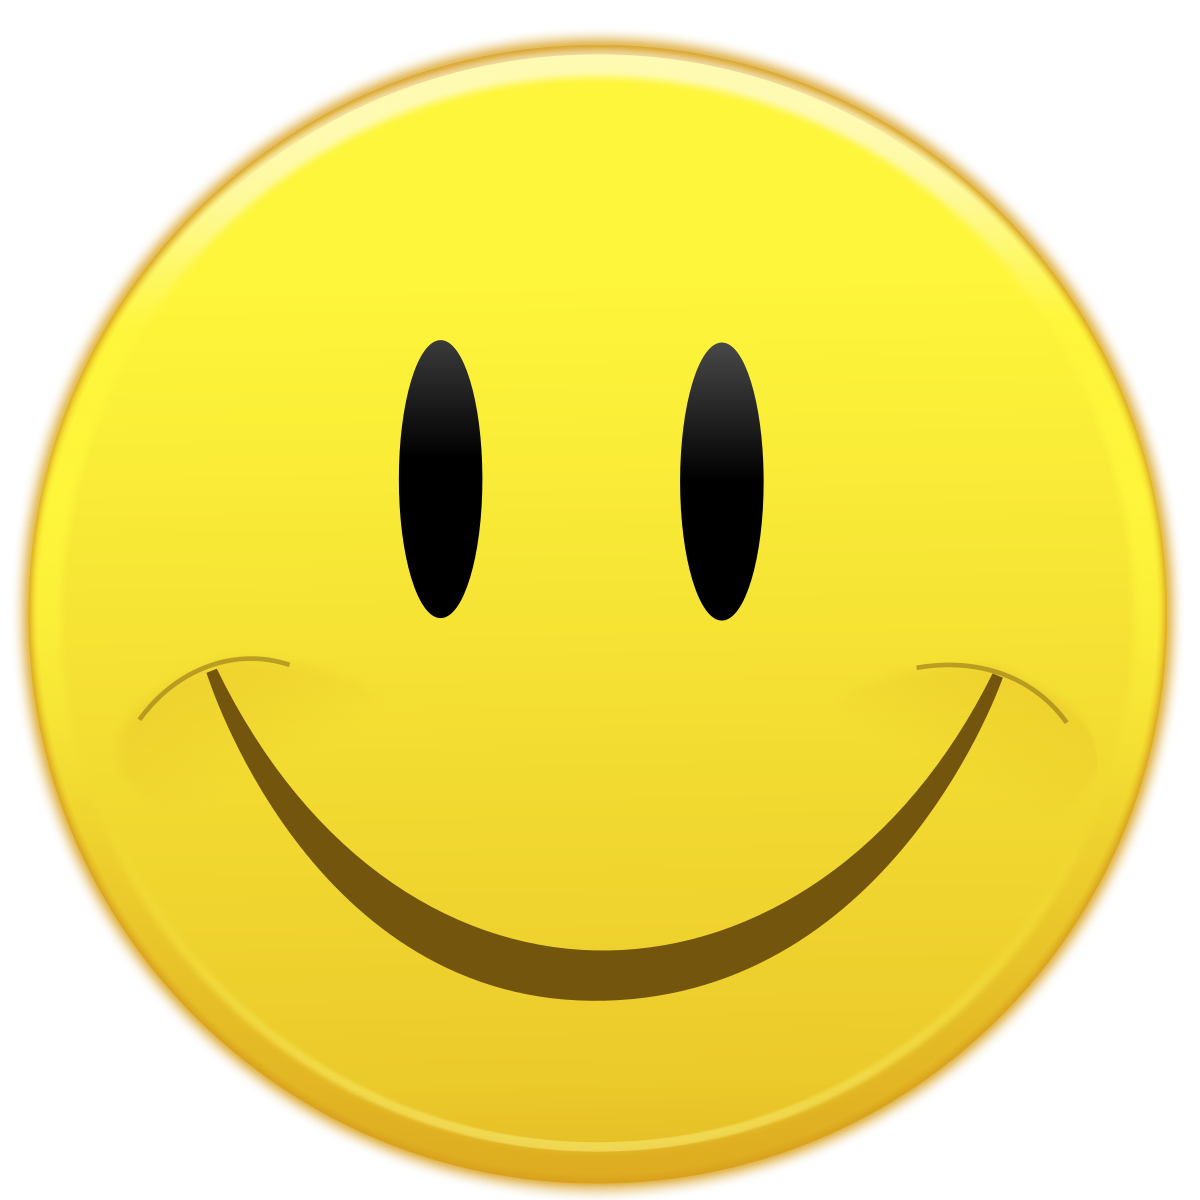 smiley wikipedia